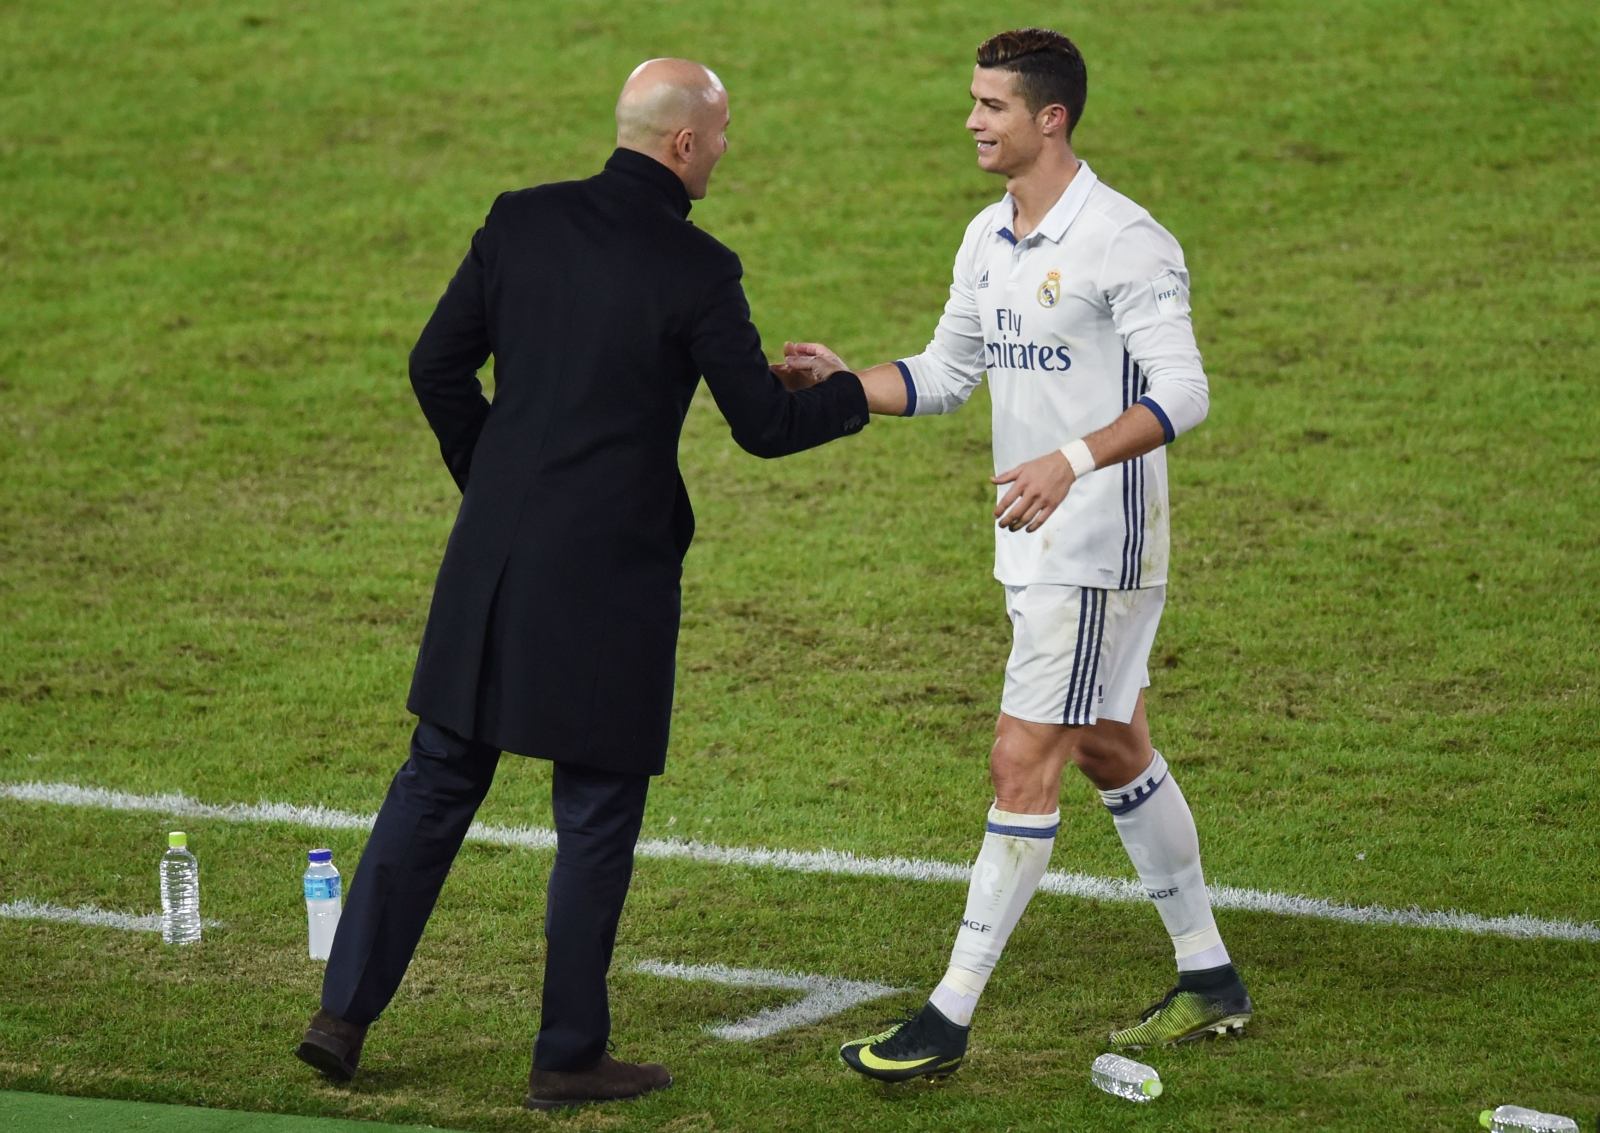 Cristiano Ronaldo to lead Real Madrid against Valencia Zidane remains coy on Gareth Bale plans